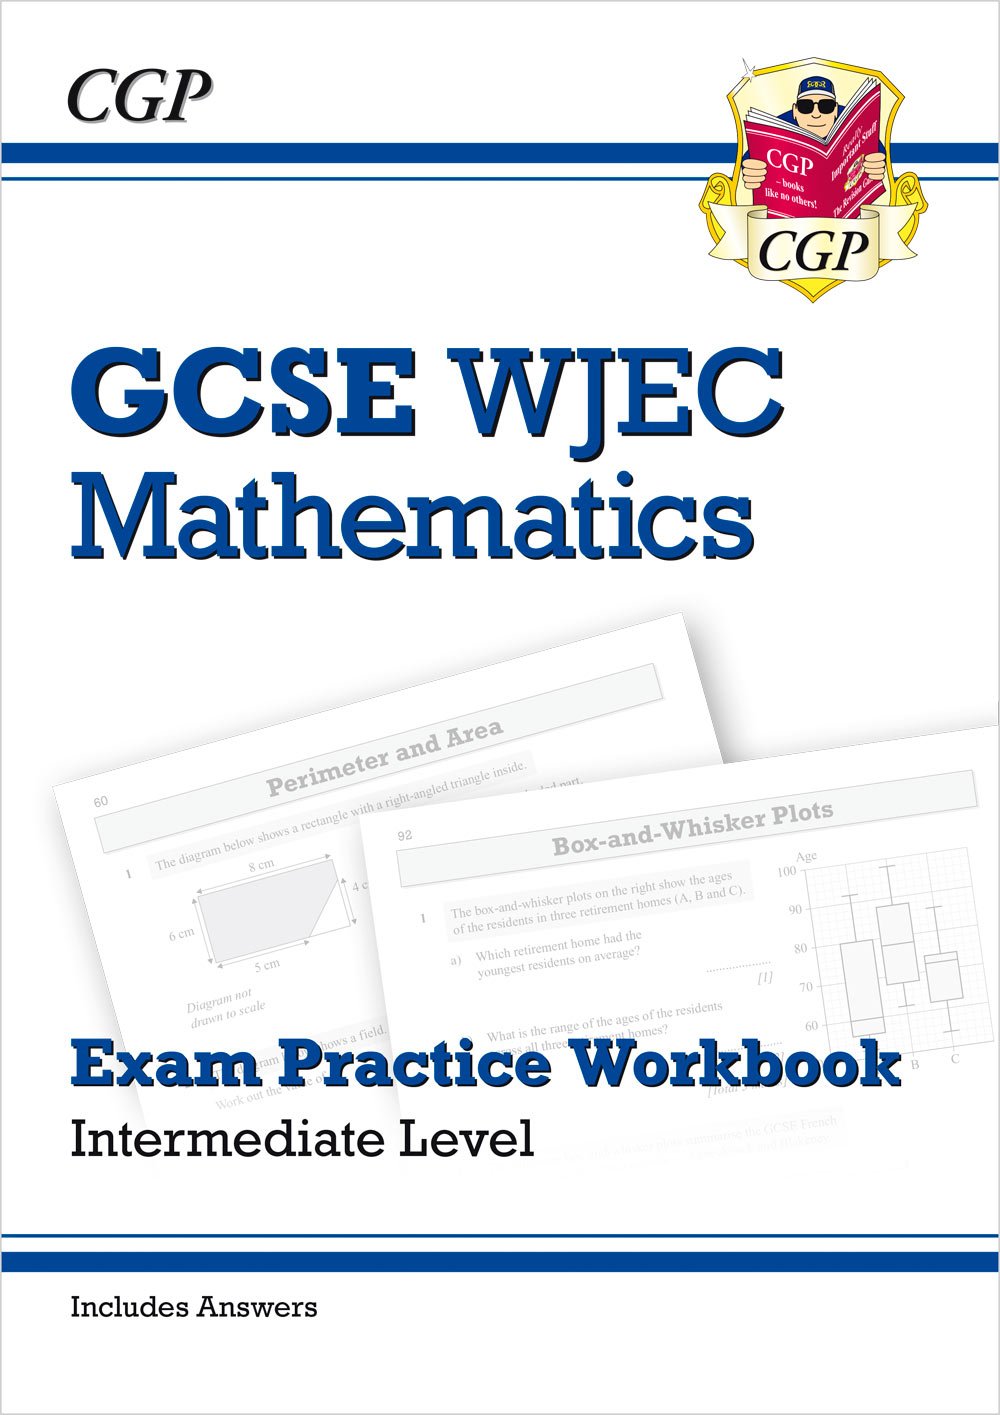 MWIQ41 - New WJEC GCSE Maths Exam Practice Workbook: Intermediate (includes Answers)